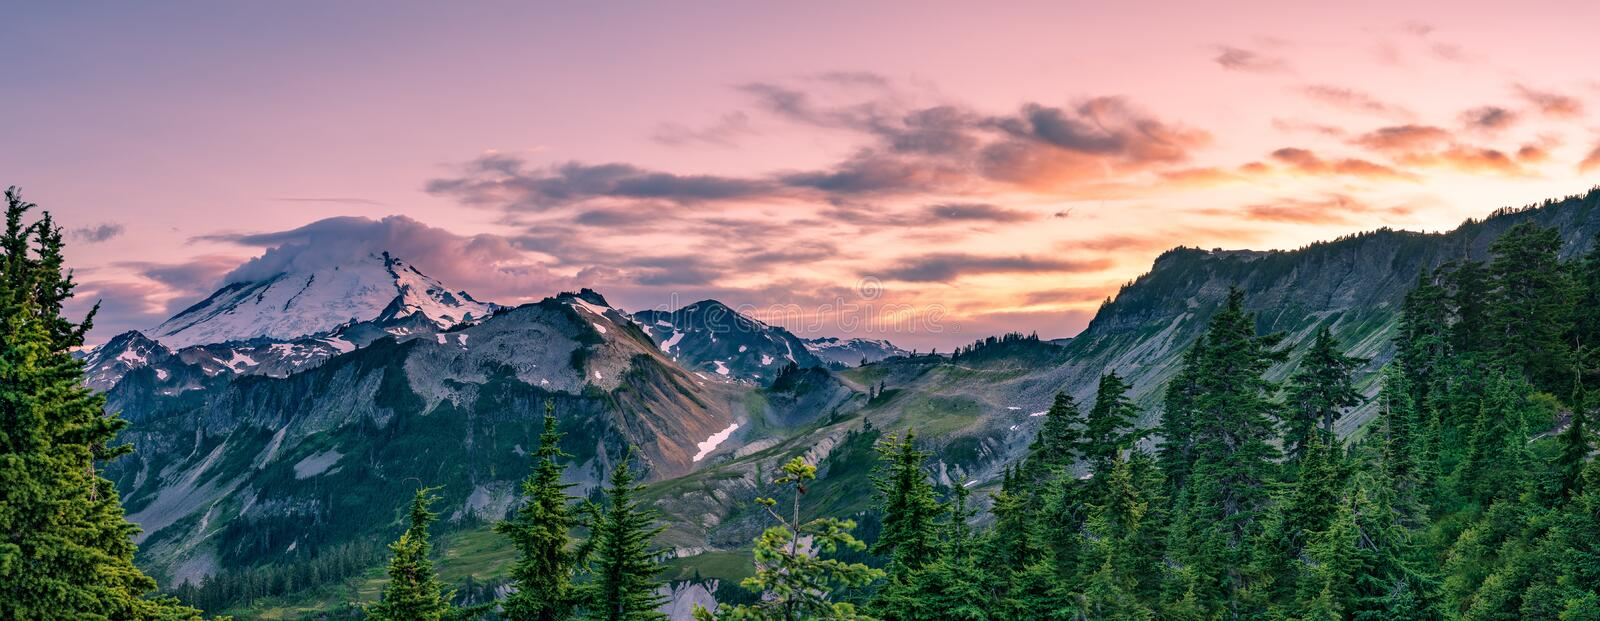 MT BAKER NATIONAL FOREST WA STATE. MT BAKER NATIONAL FOREST MT BAKER PANO AT SUNSET CLOUDY SKY stock photos